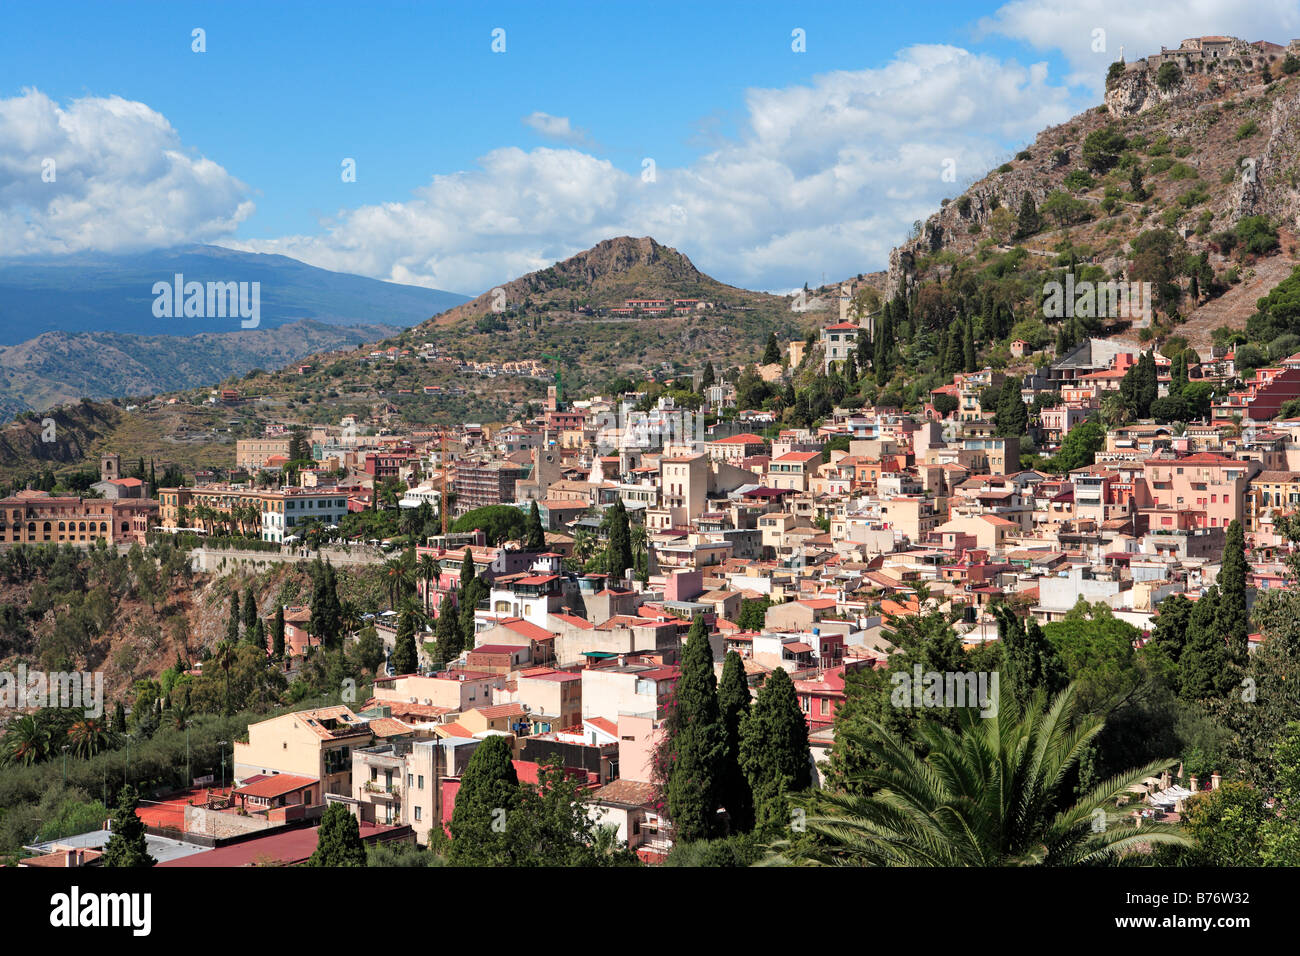 Overview of Taormina with Mount Etna streaming cloud, Sicily - Stock Image